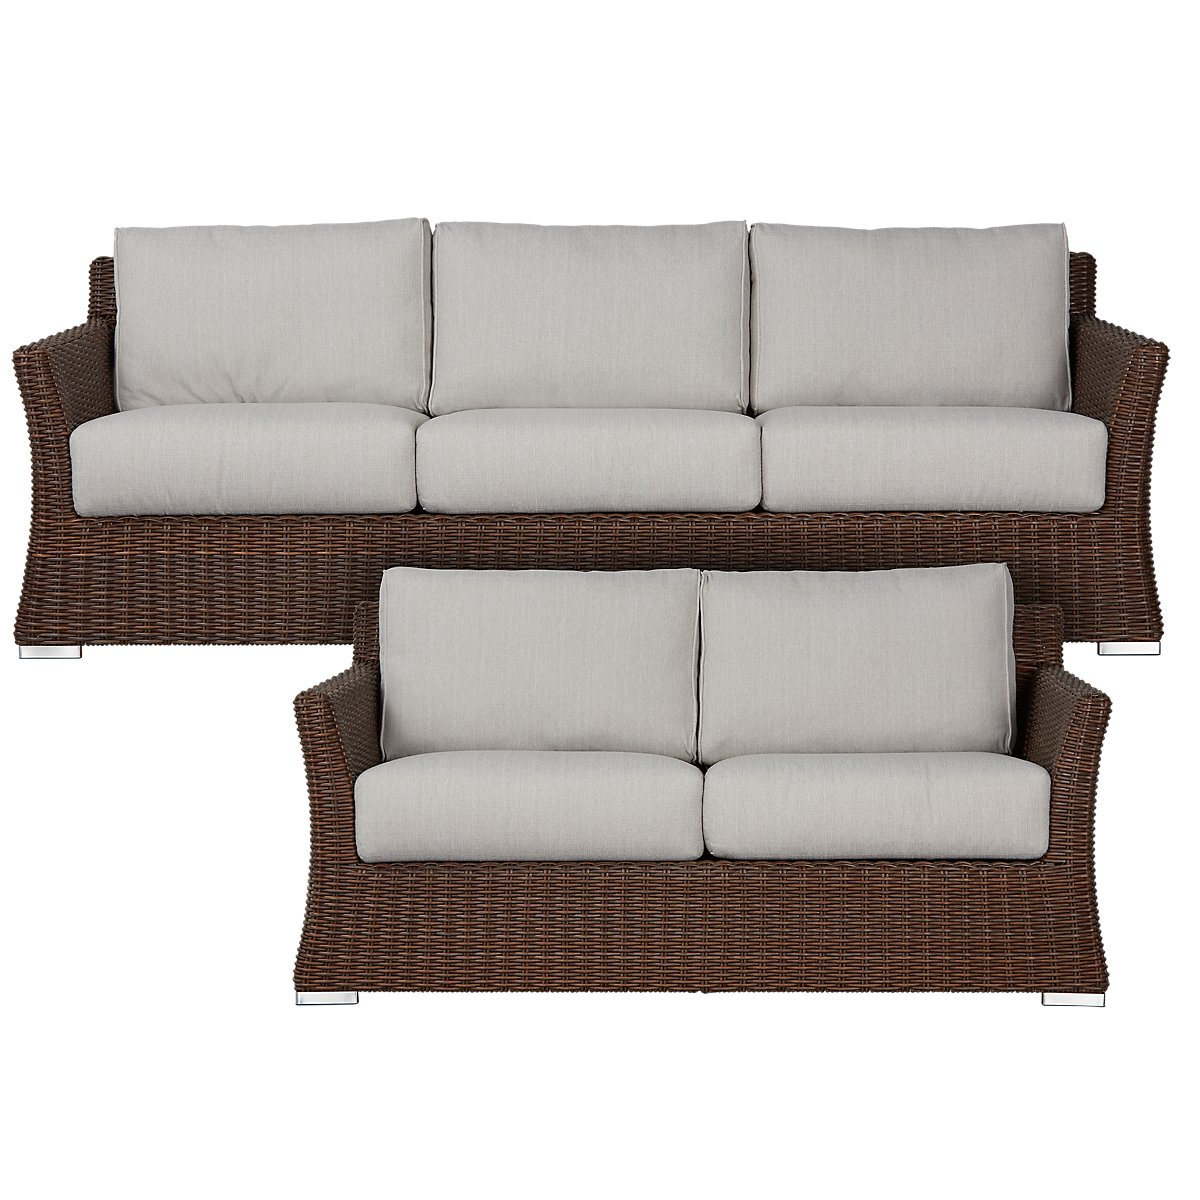 City Furniture: Southport Gray Woven Outdoor Living Room Set